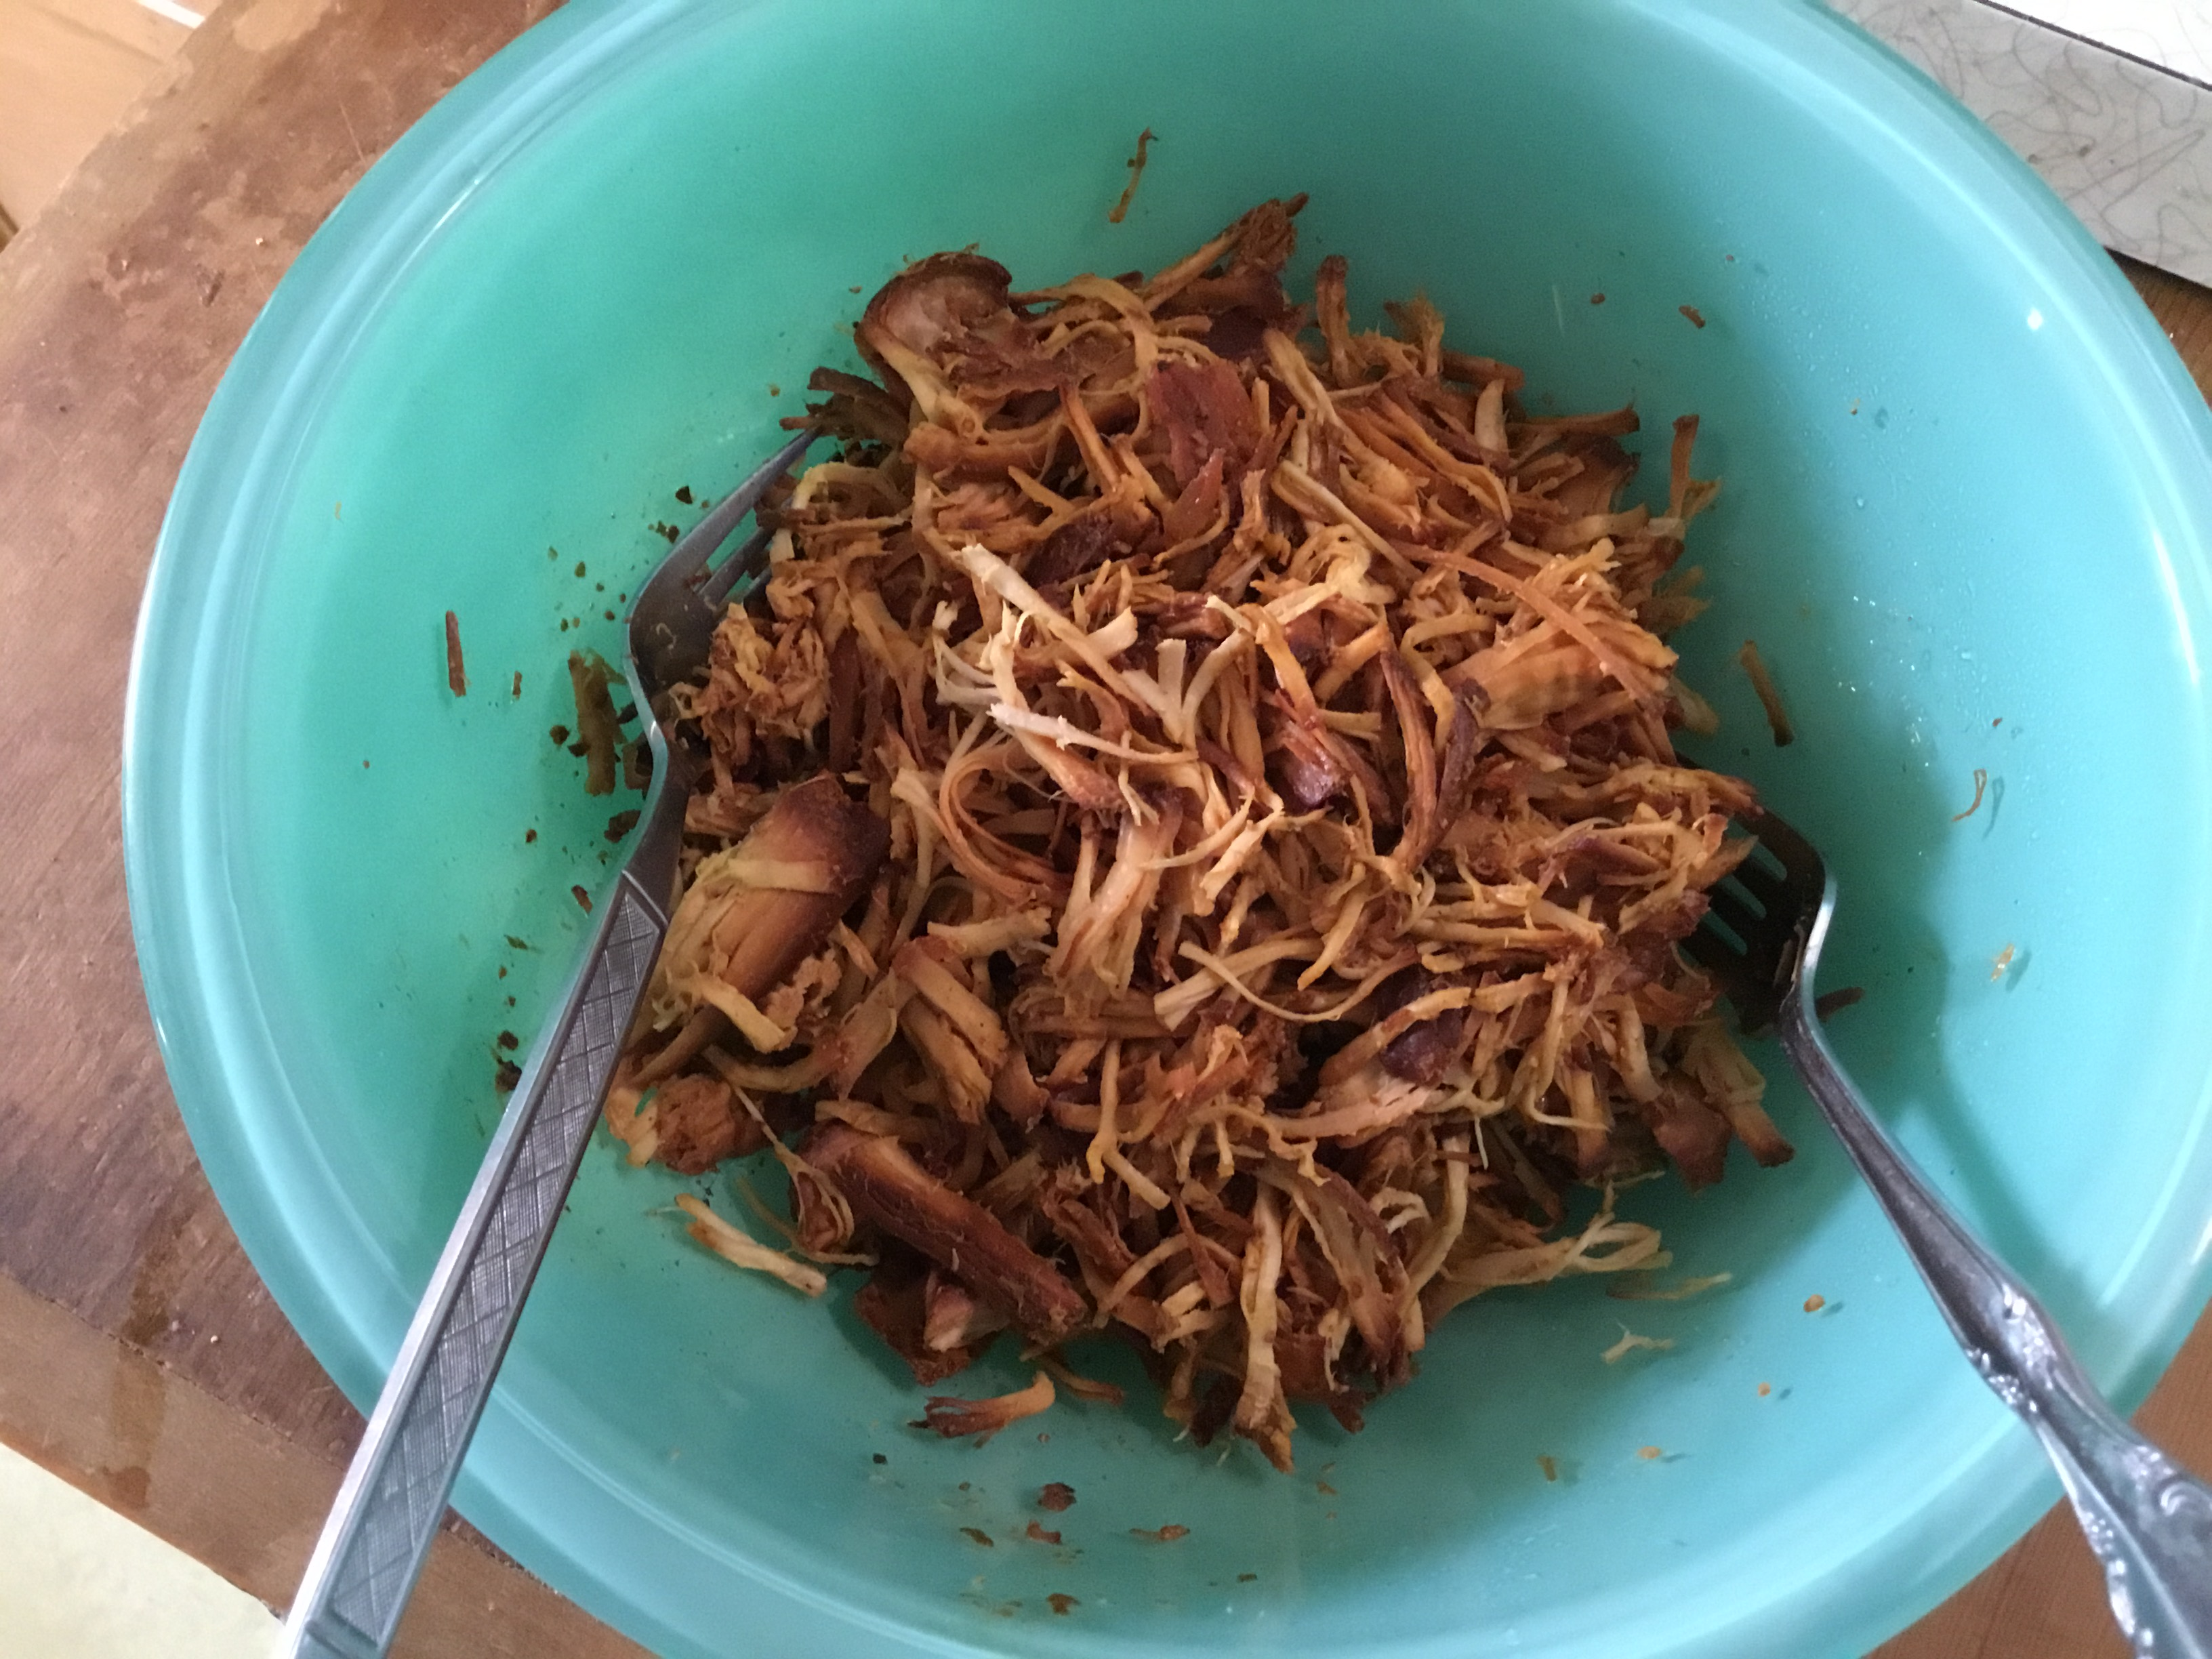 Slow Cooker Pulled Pork with Root Beer Donna Hamilton Horton